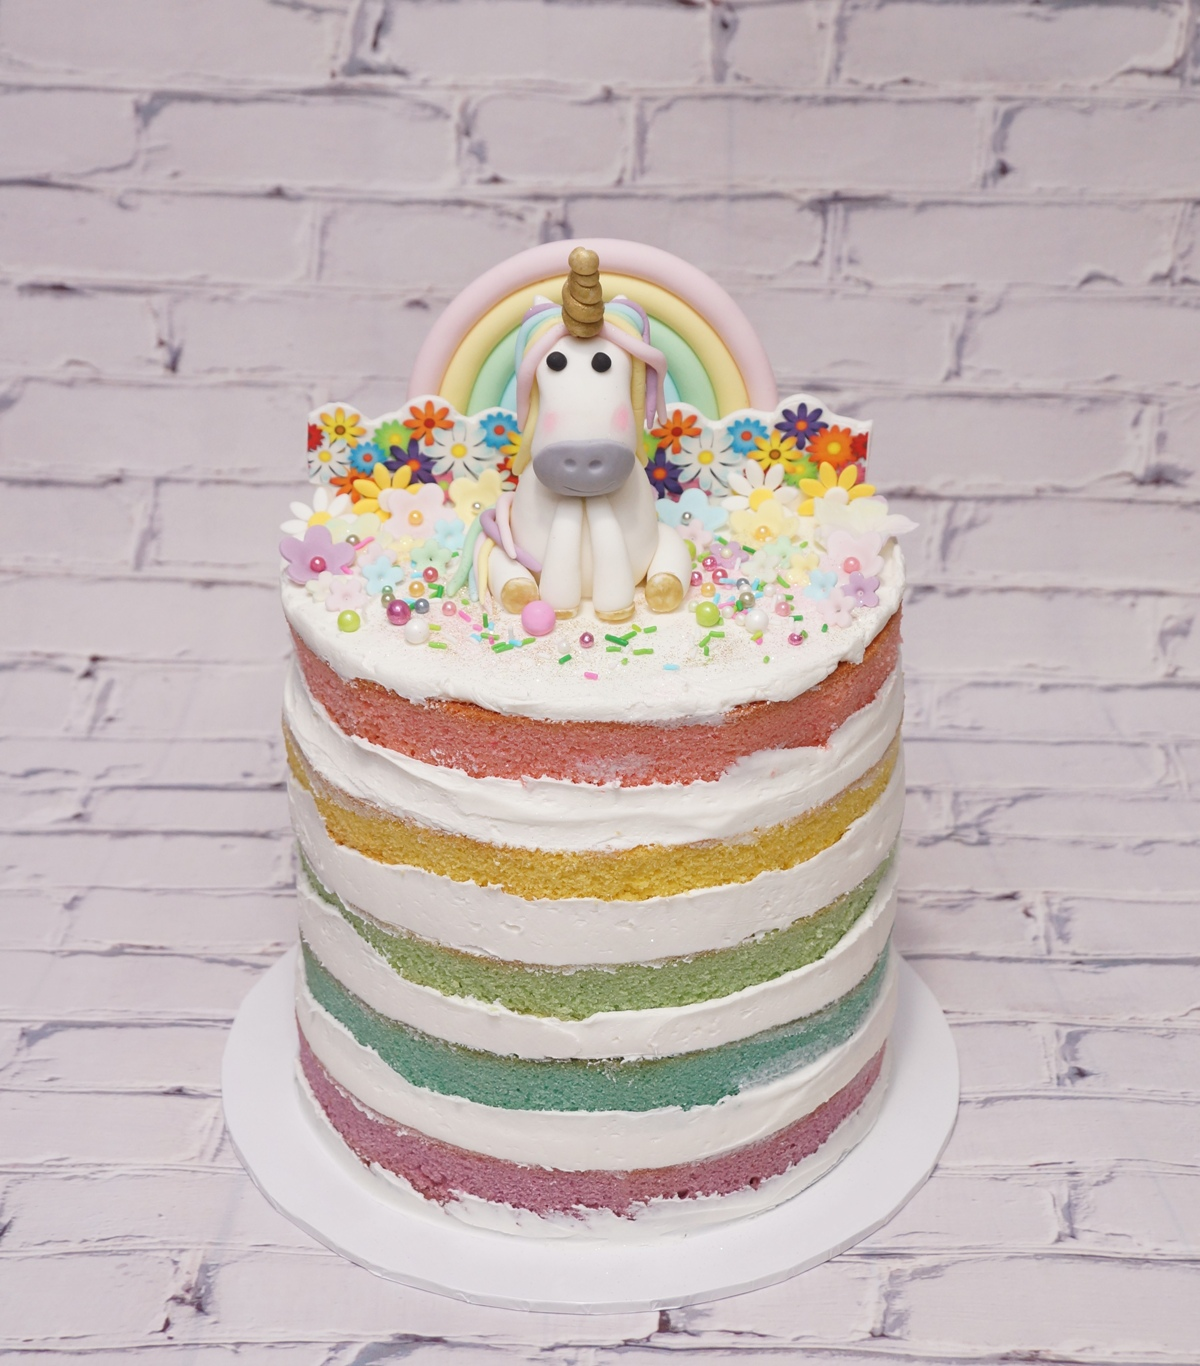 Rainbow Unicorn Cake with Flowers 1